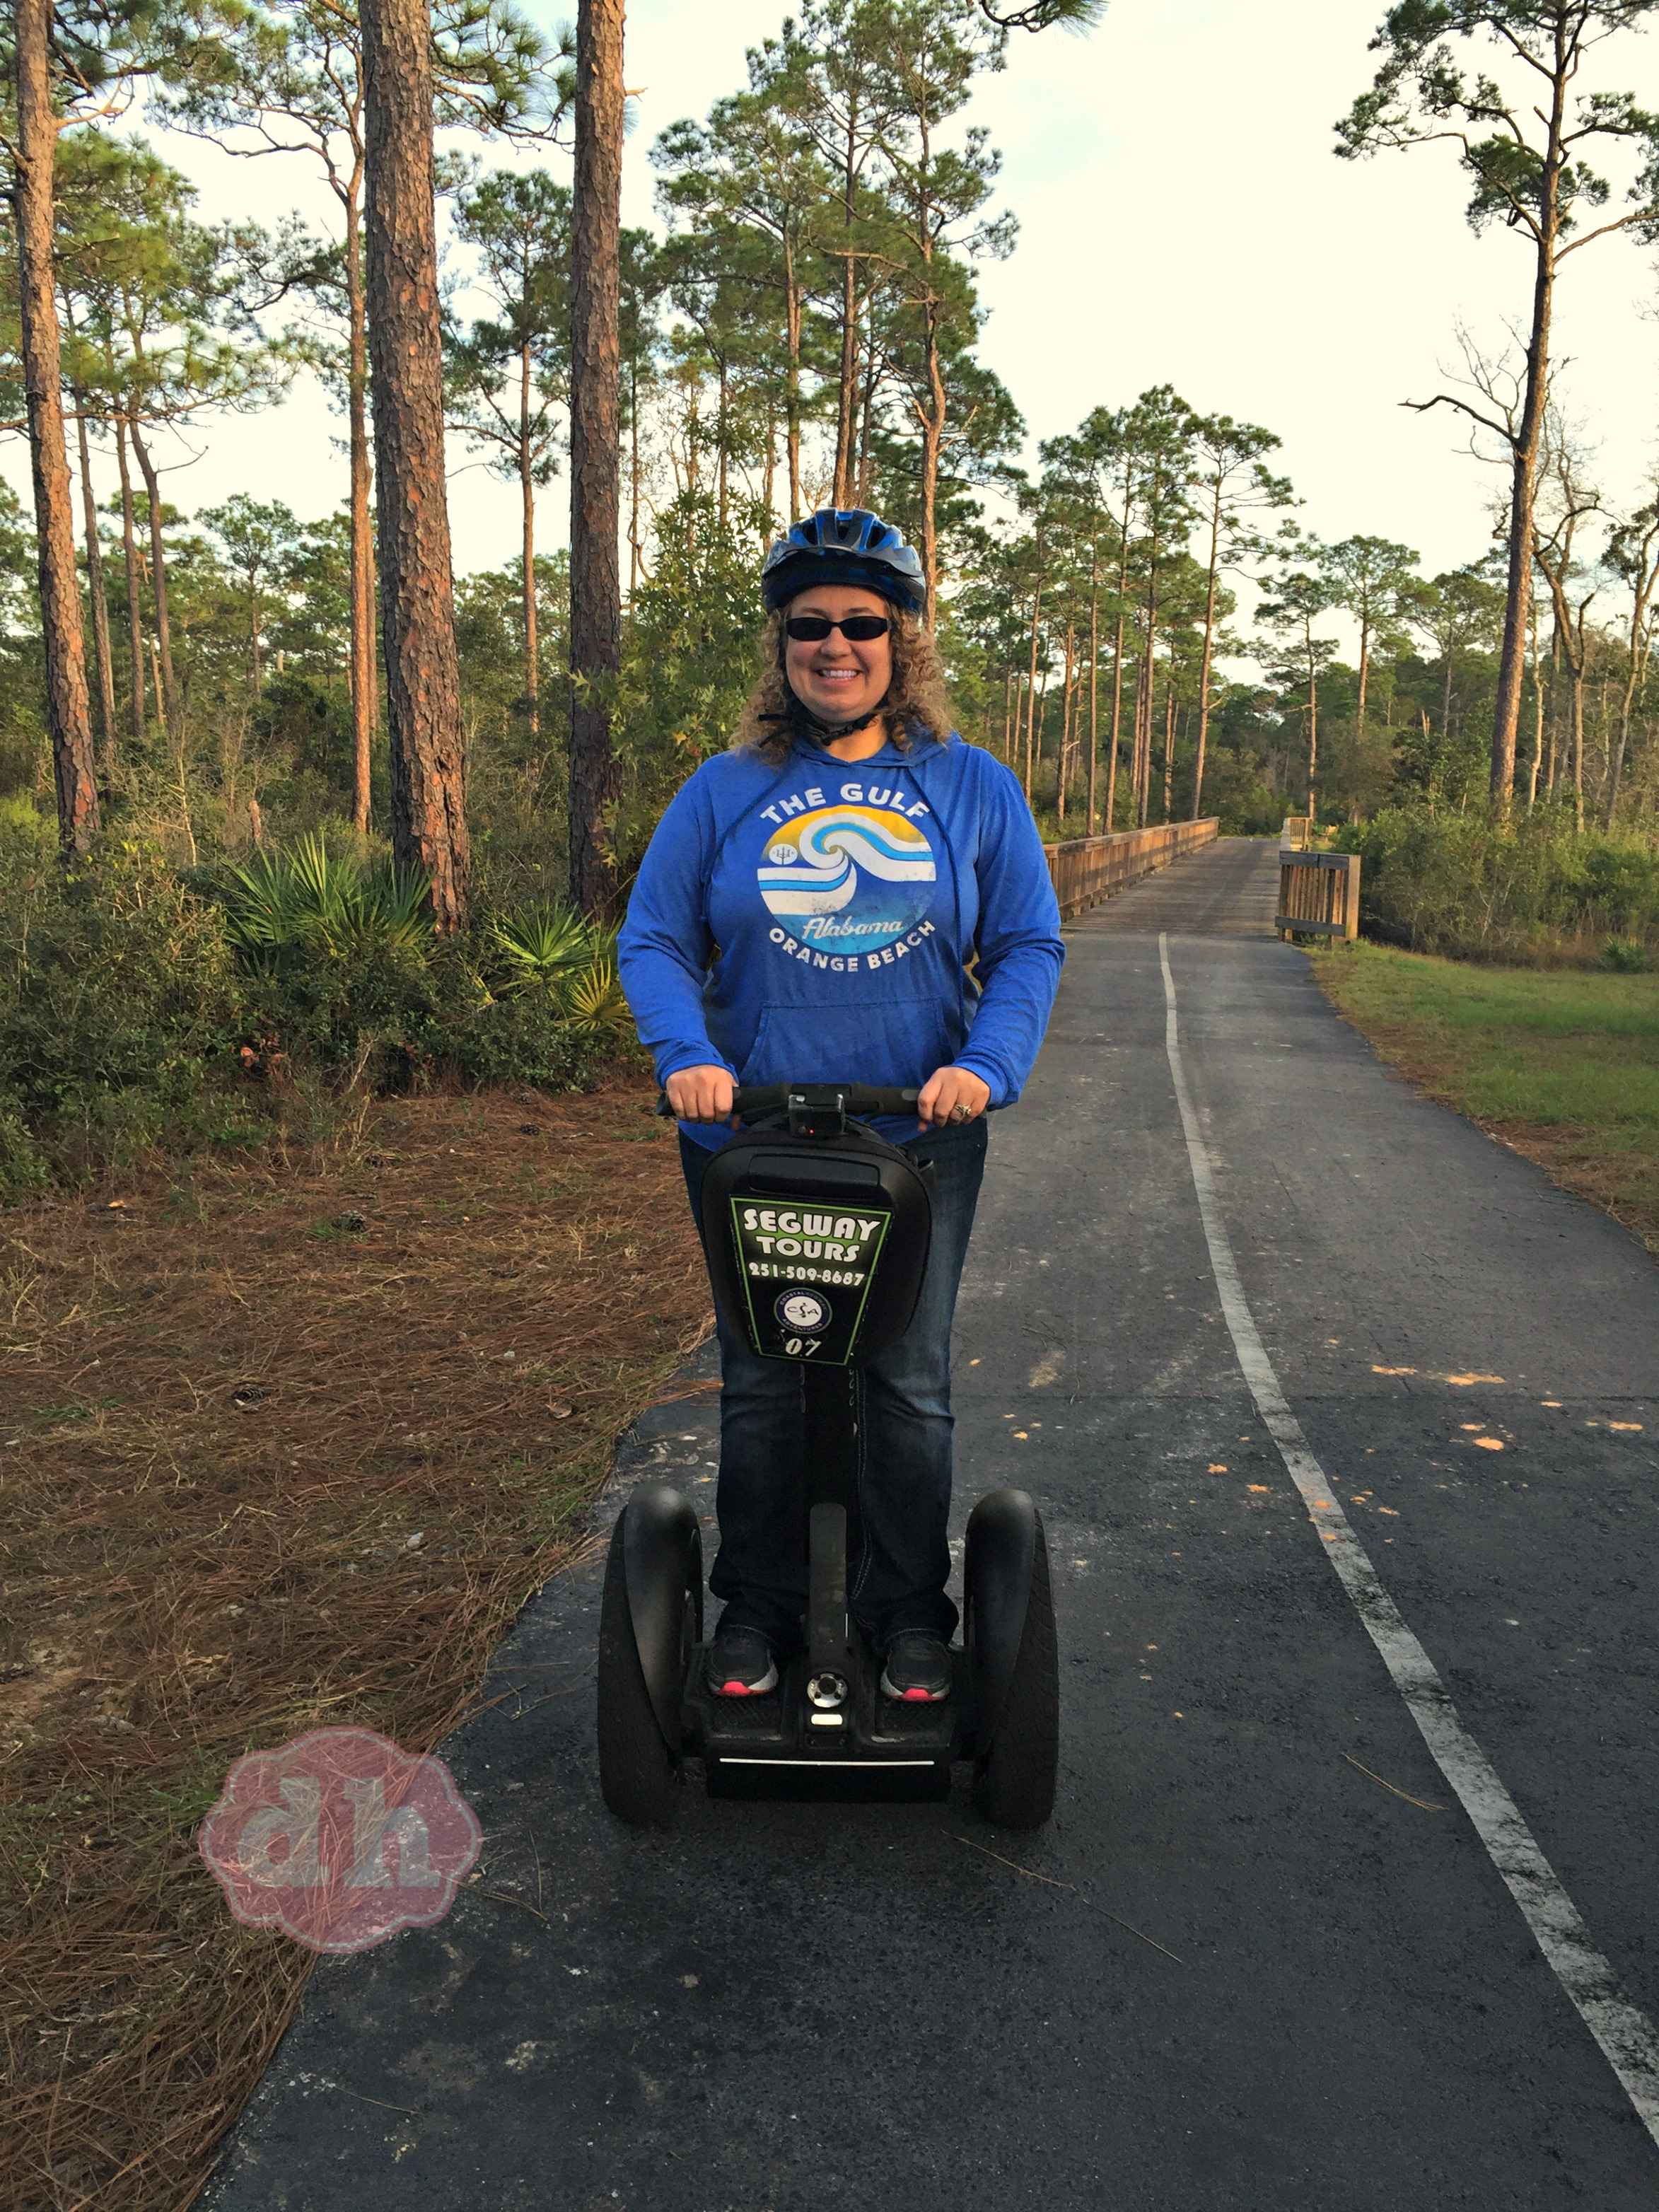 My Day of Exploring on a Segway